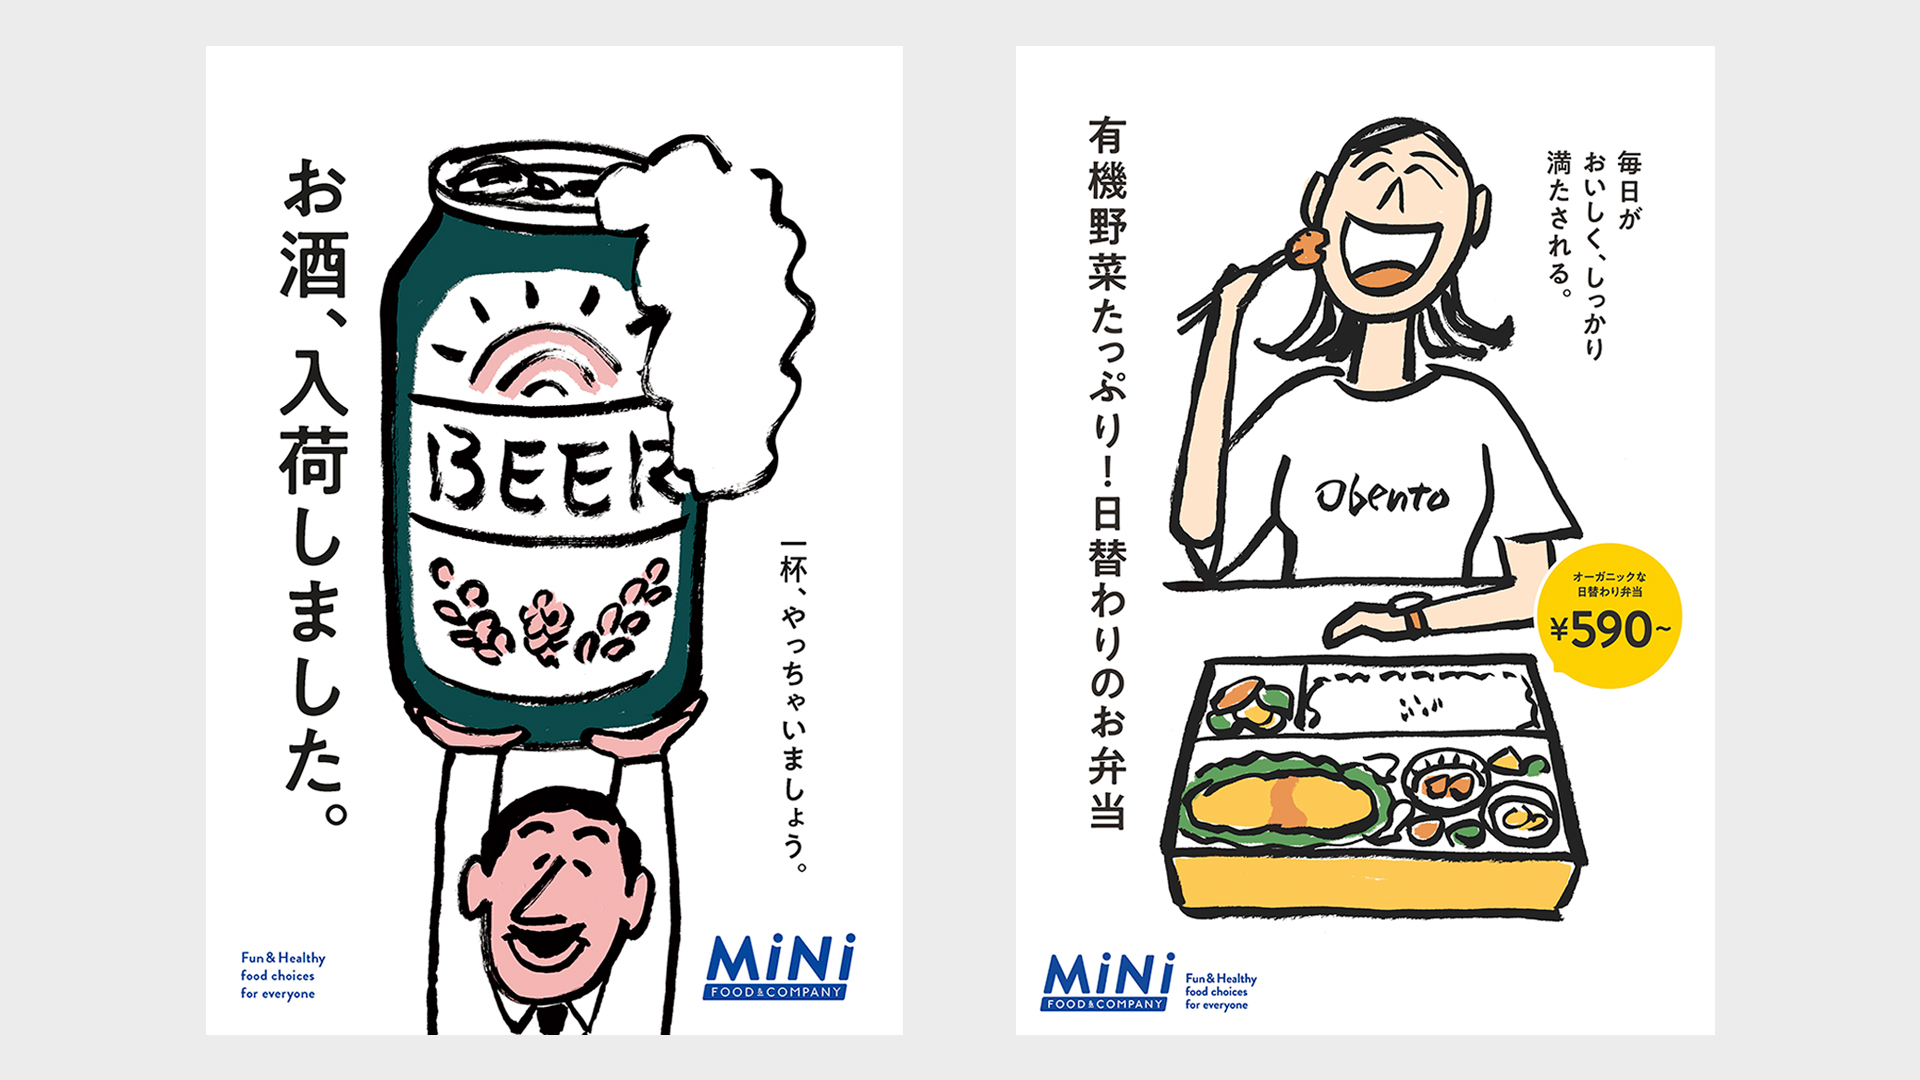 「MiNi by FOOD&COMPANY」ポスター